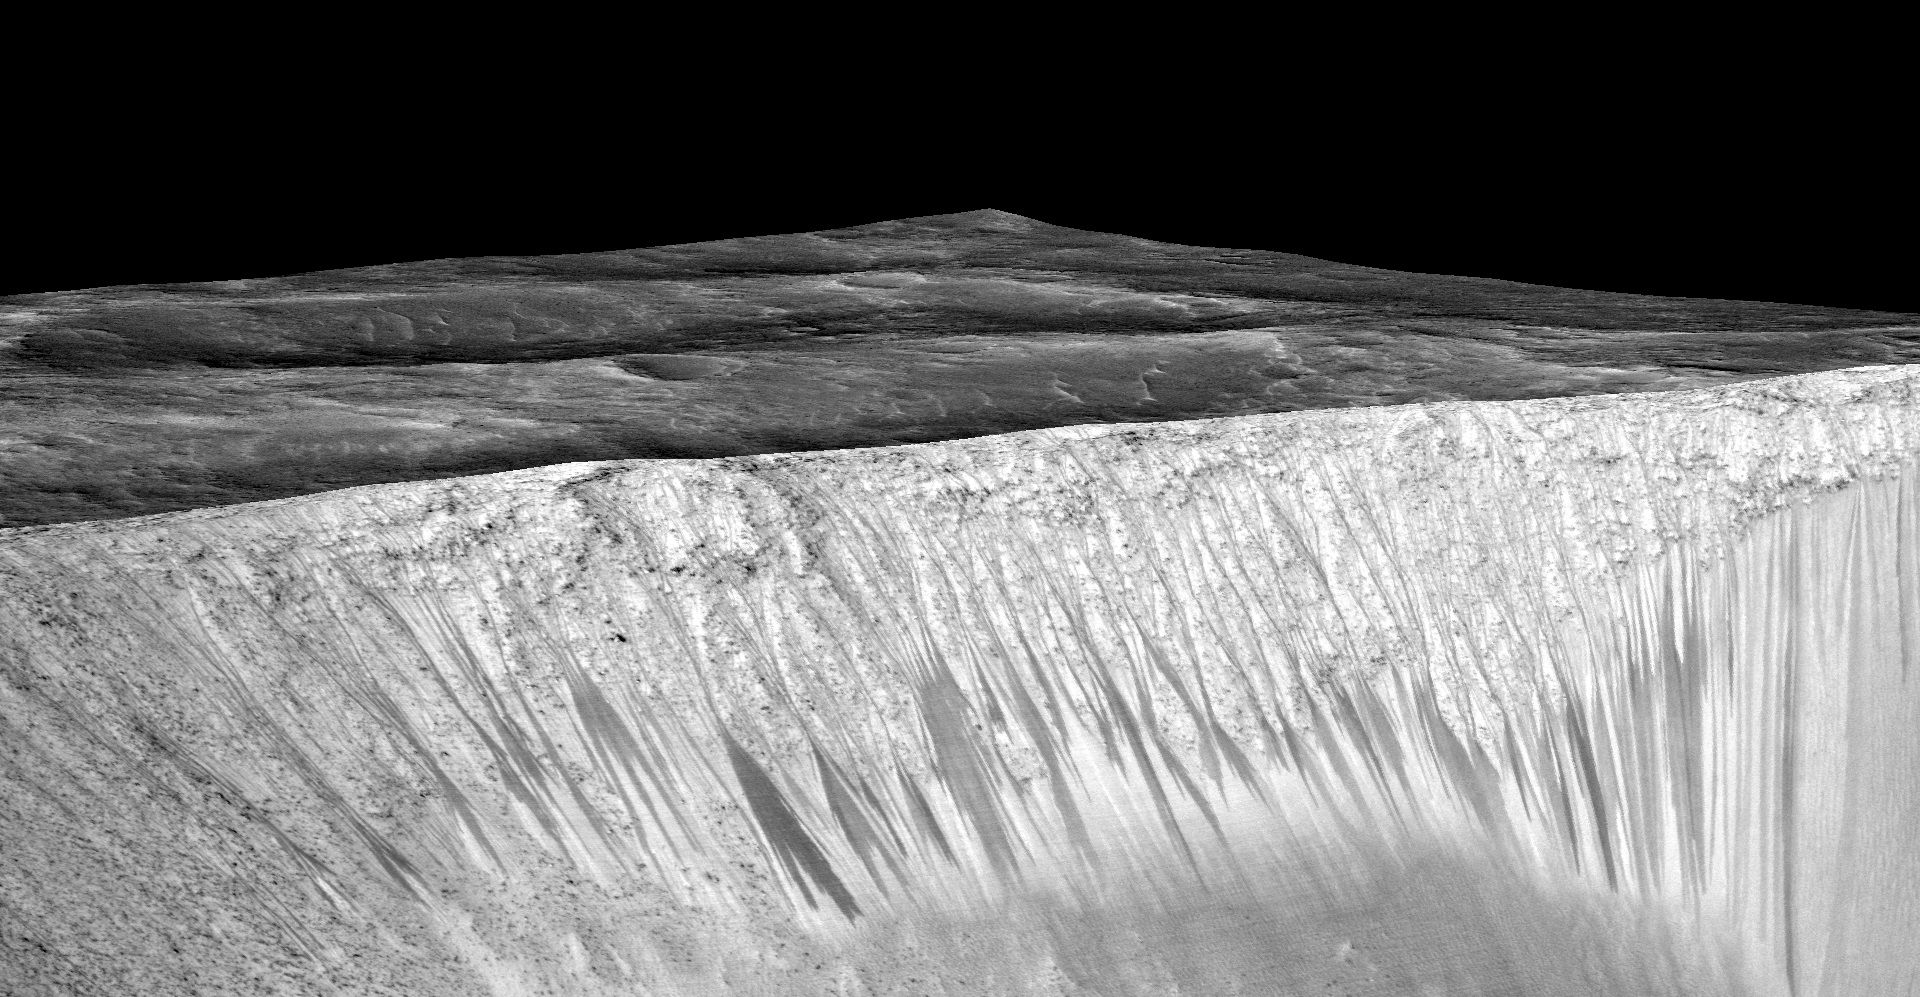 Findings almost confirms that liquid water flows on Mars